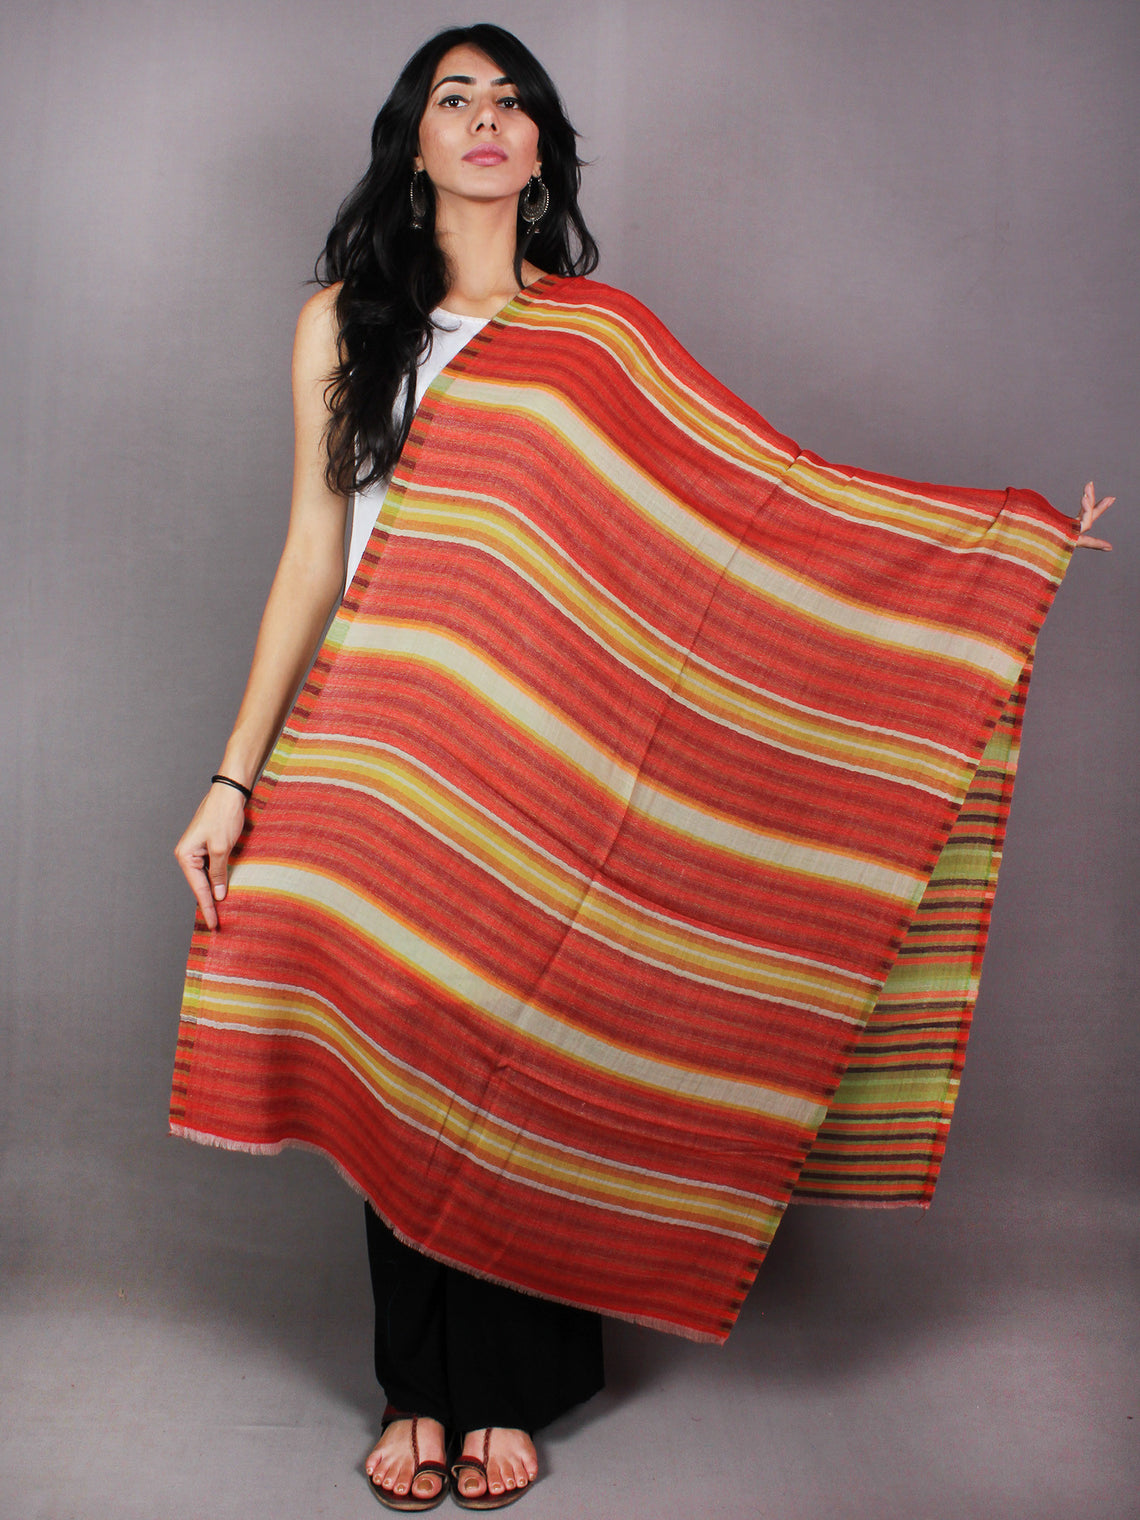 Red Yellow White Maroon Pure Wool Reversible Lining Weaved Cashmere Stole from Kashmir - S6317110